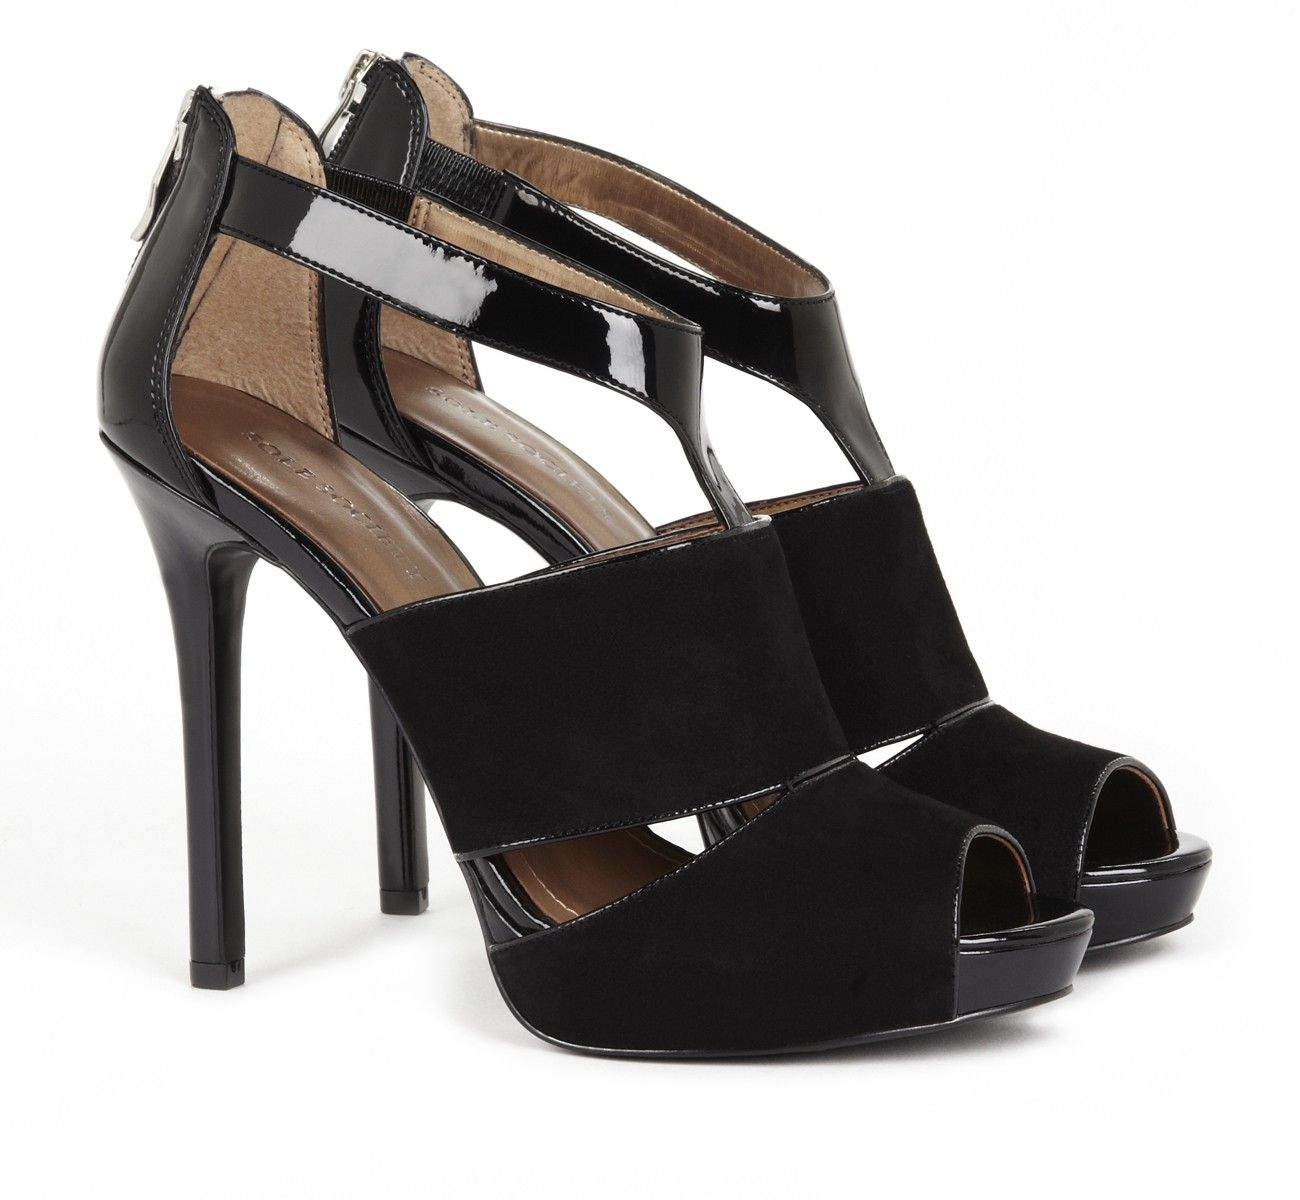 black strapped heels | Heels, Shoes, Fashion shoes